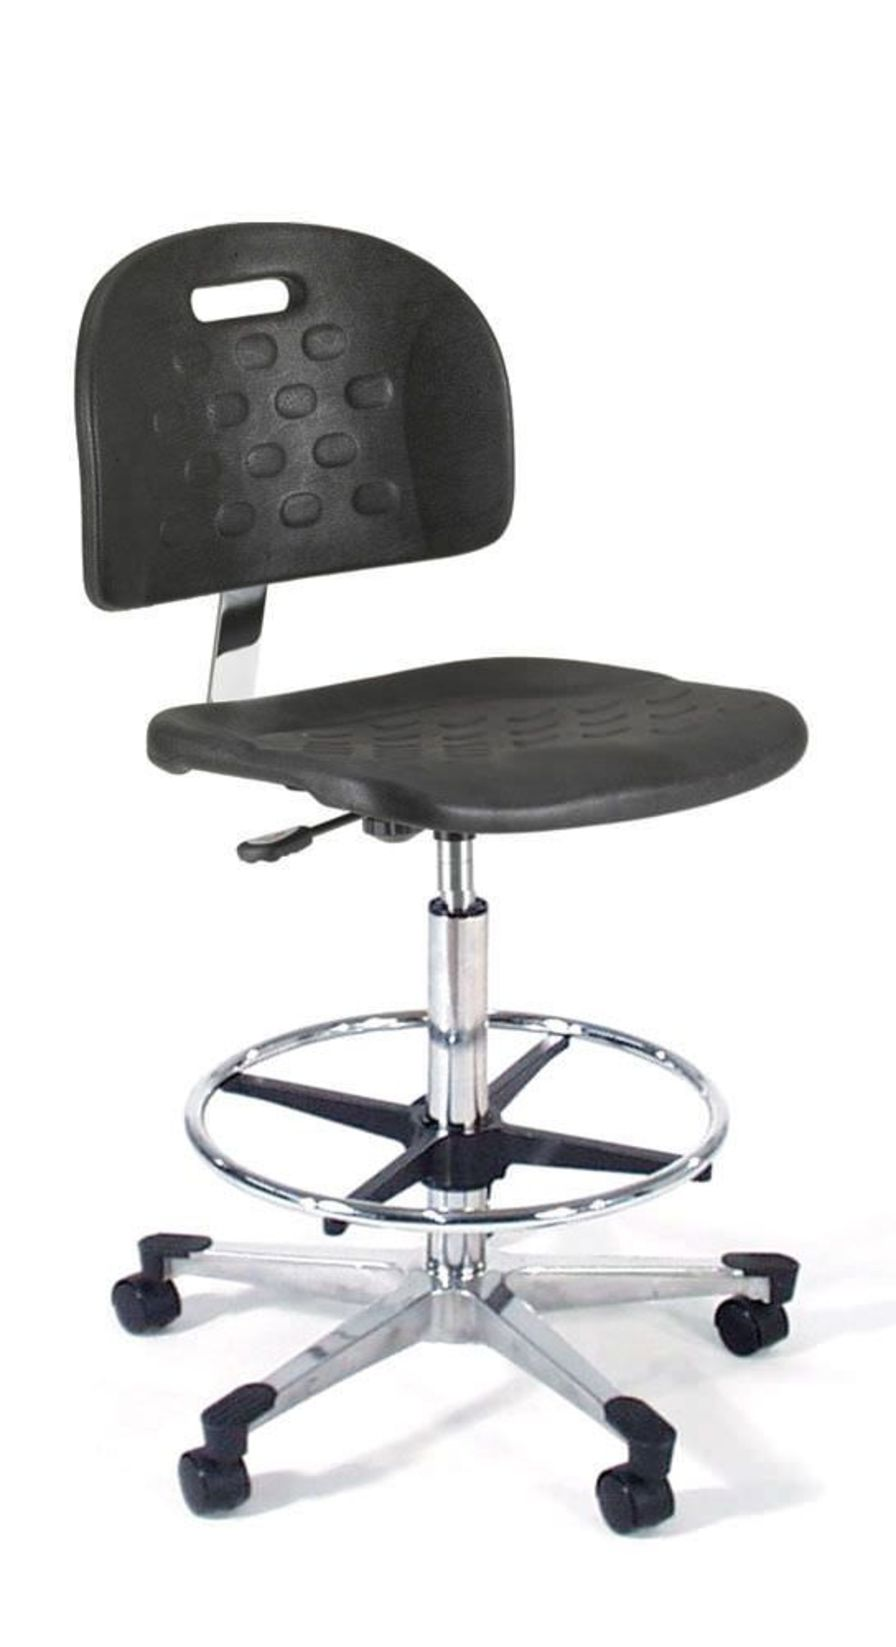 Medical stool / height-adjustable / on casters / with backrest 842 Intensa